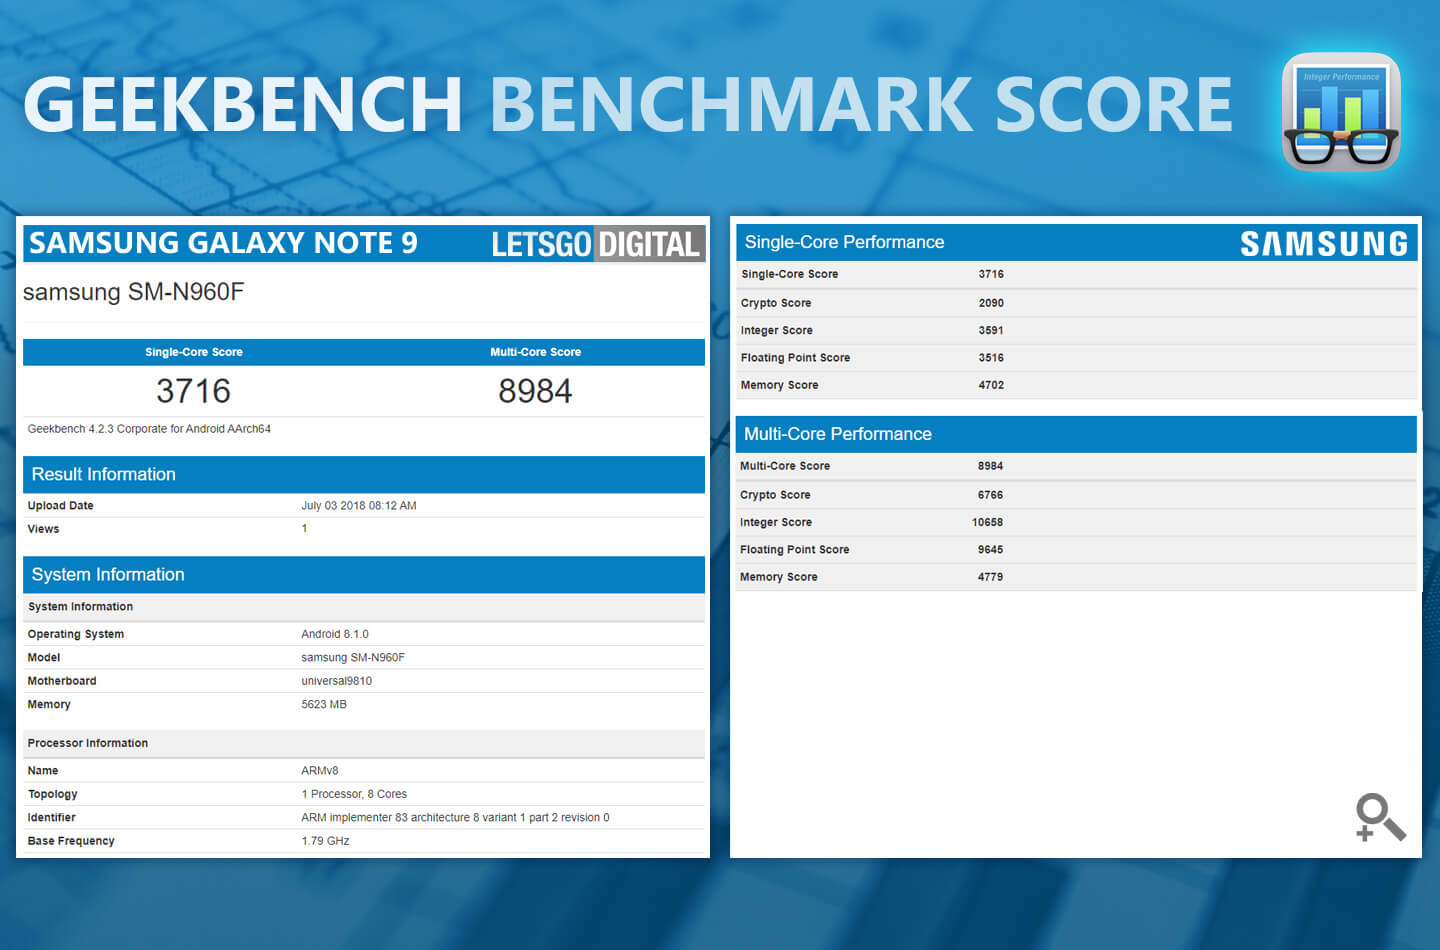 Samsung Galaxy Note 9 benchmark